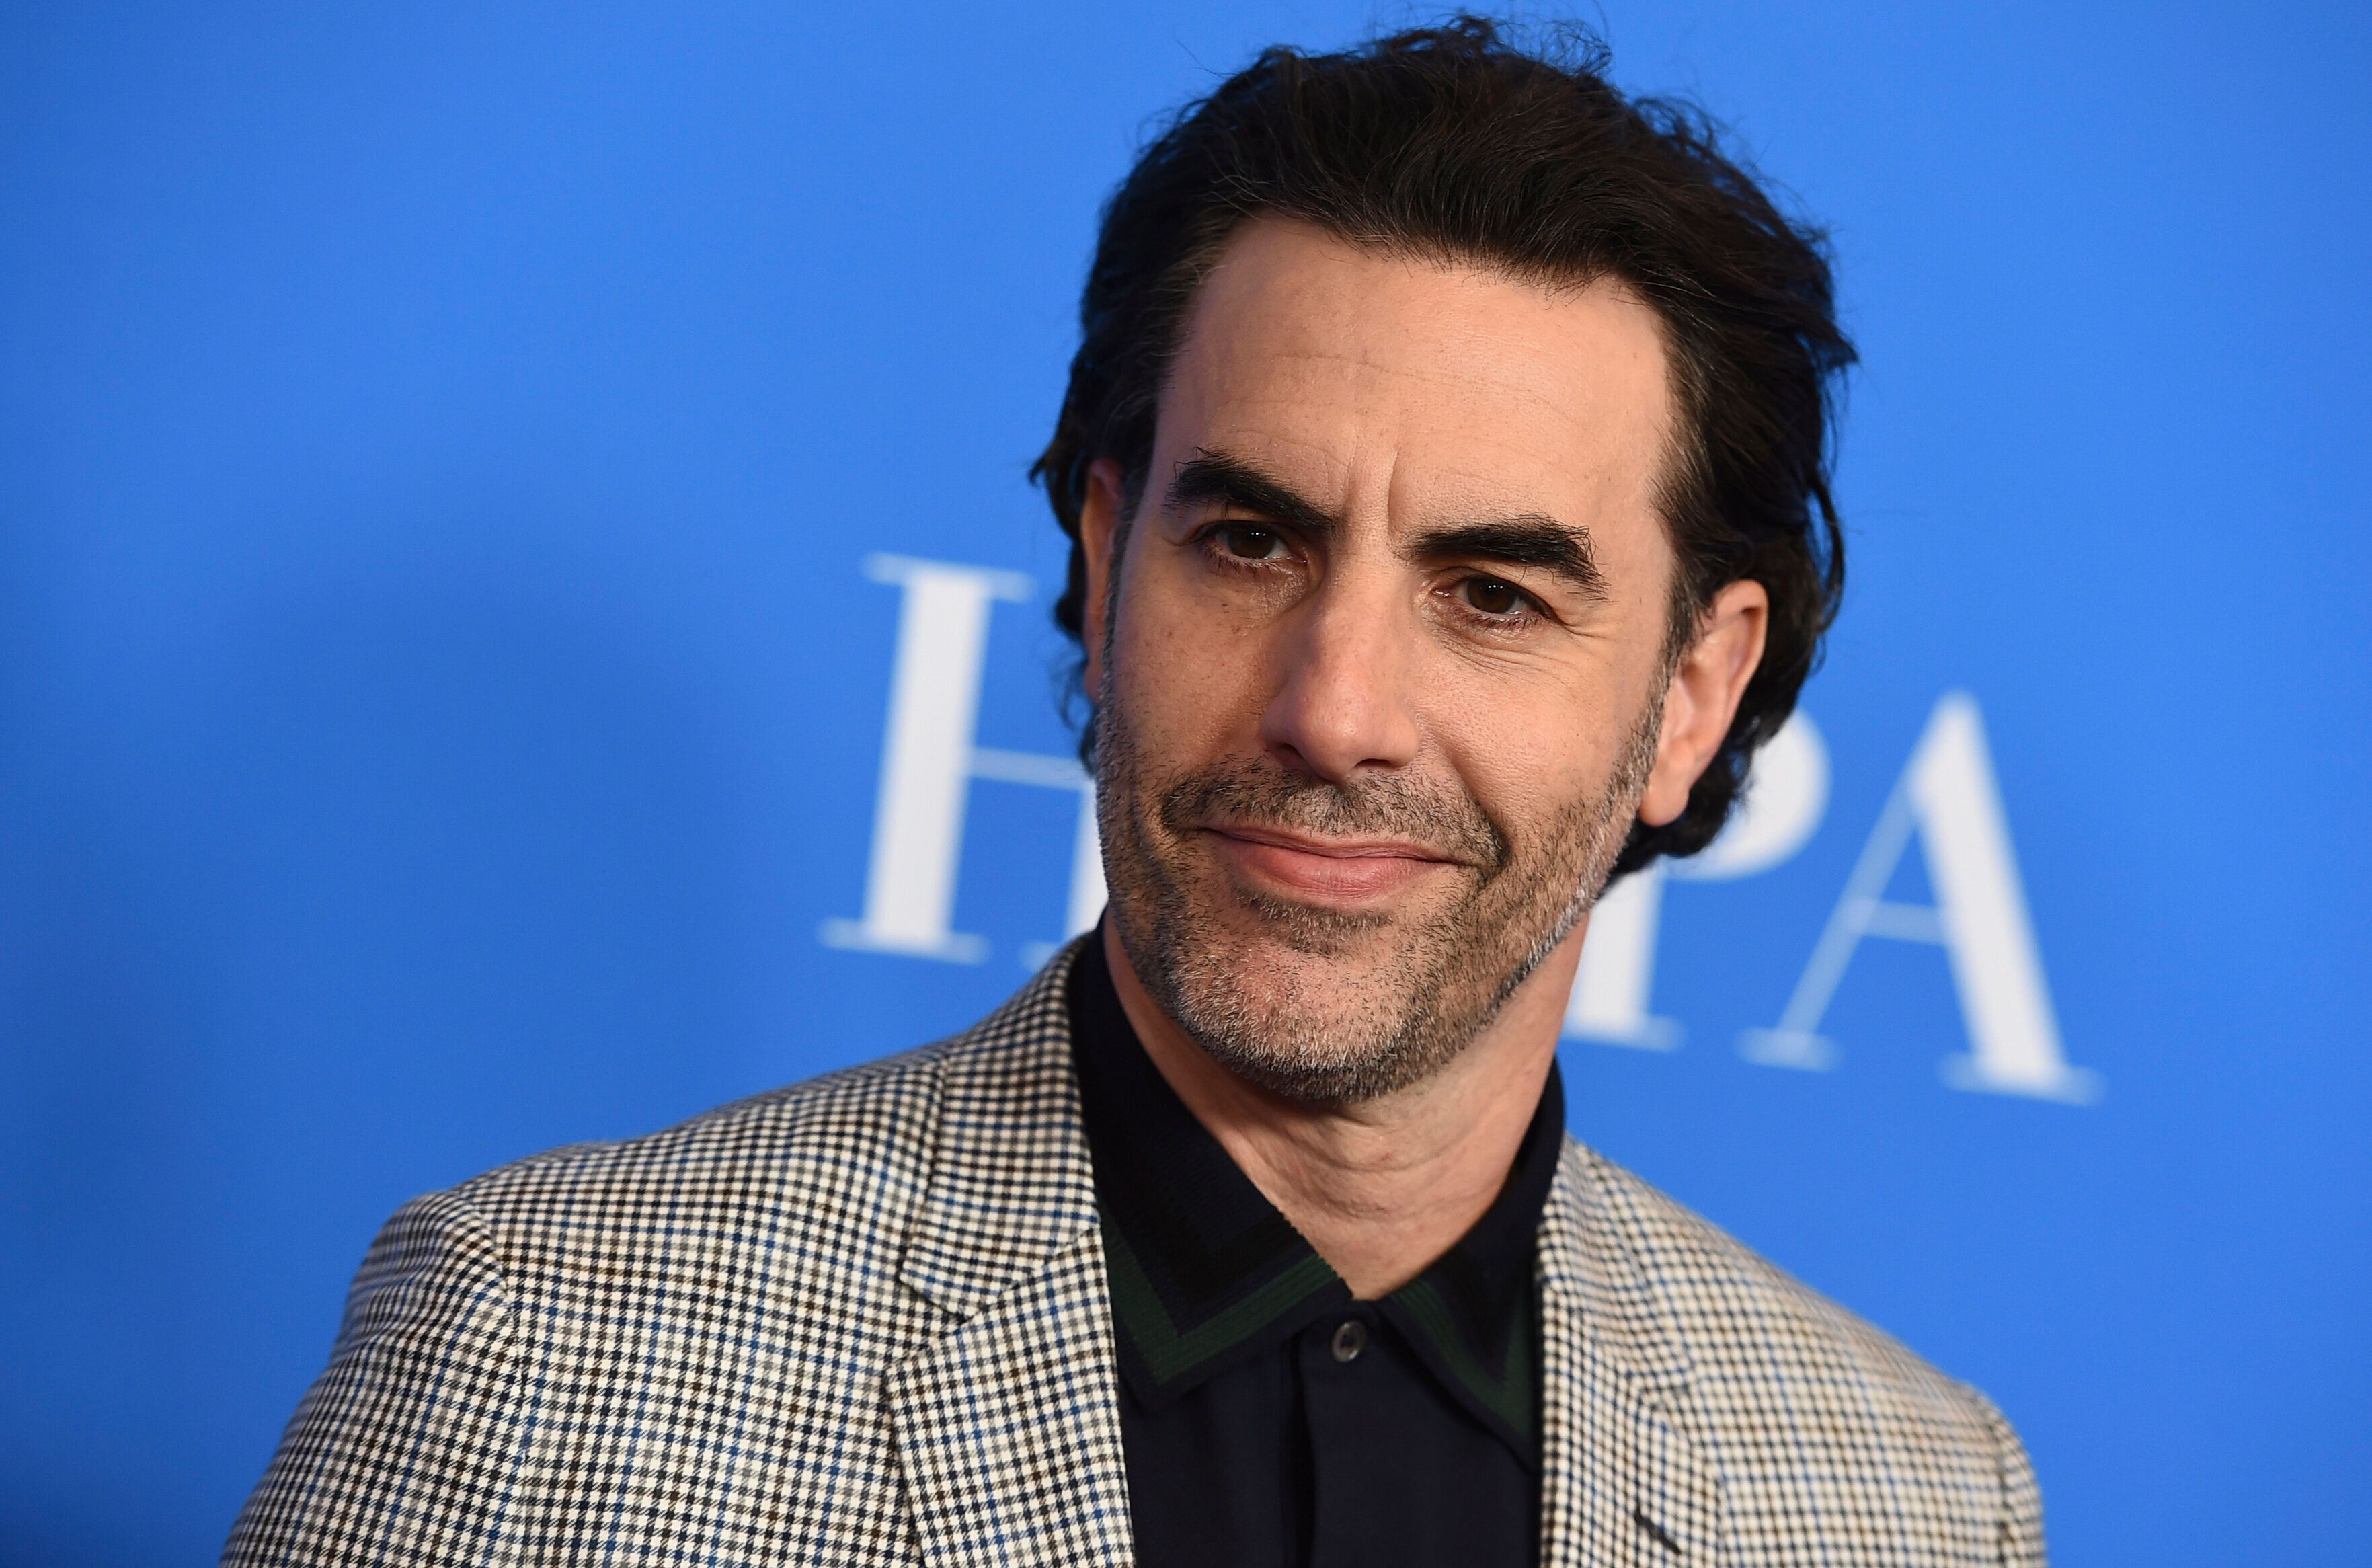 Sacha Baron Cohen took aim at Facebook and other tech platforms during a speech at an Anti-Defamation League summit on Thursd